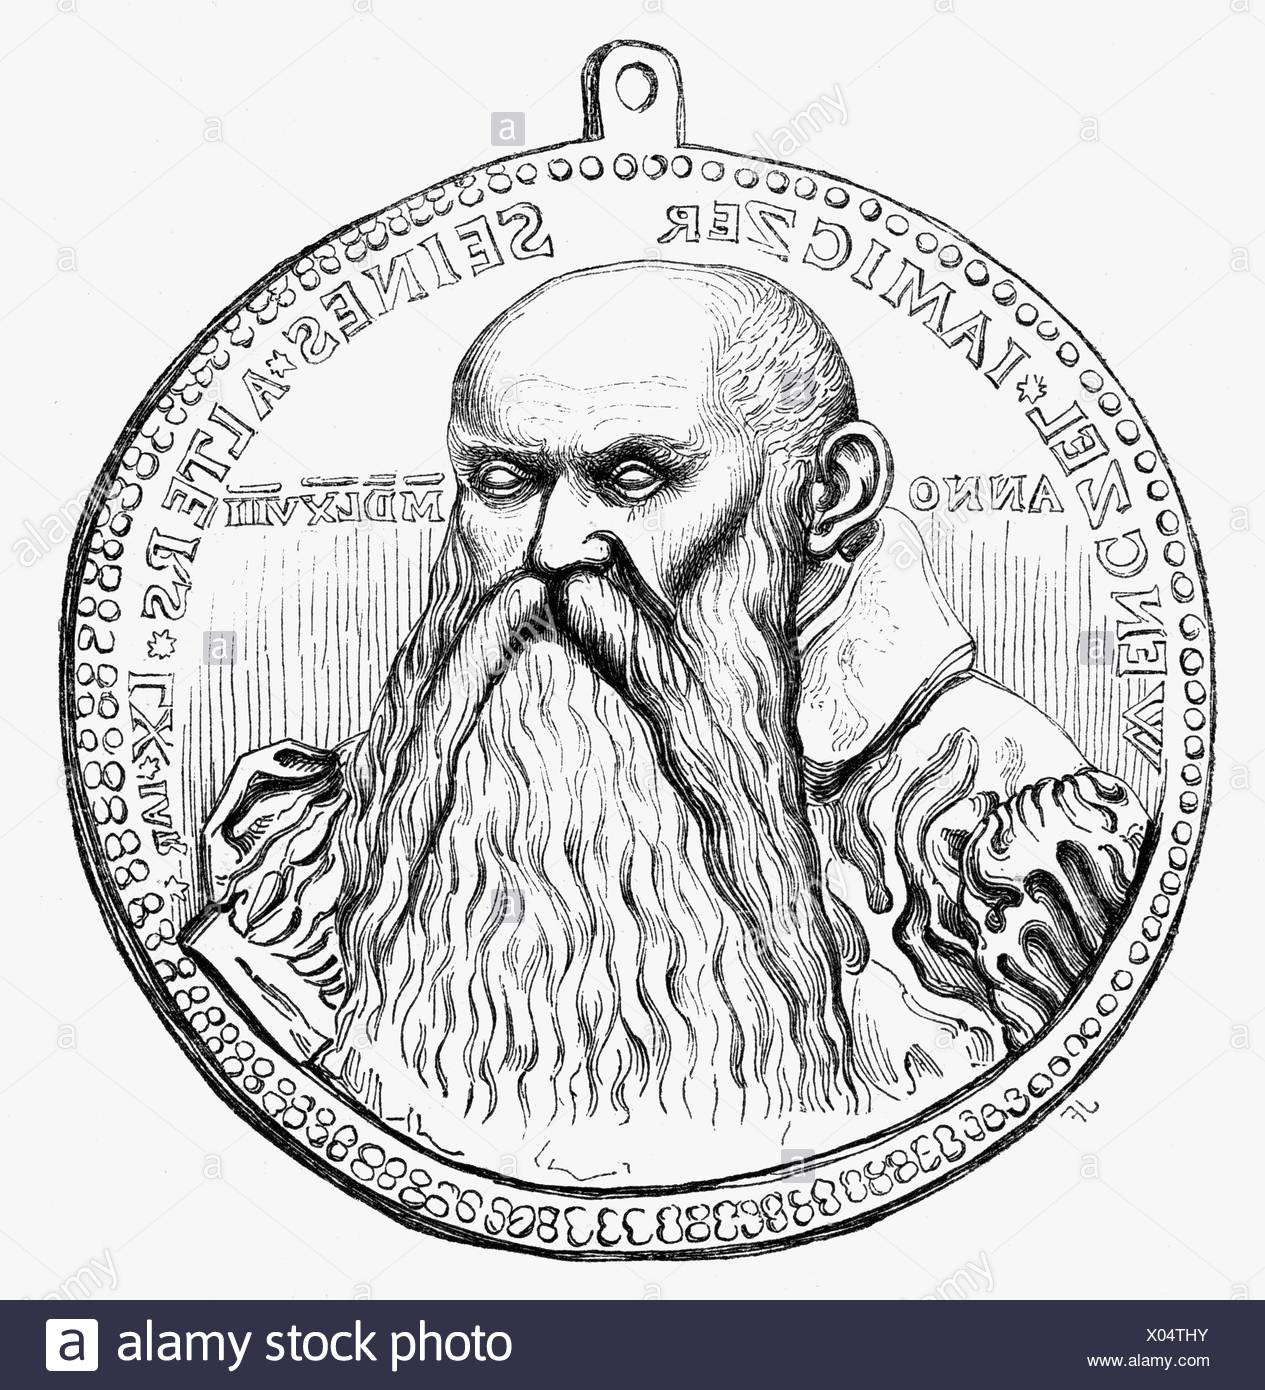 Jamitzer, Wenzel (Jamnitzer), 1508 - 19.12.1585, German printmaker, goldsmith, mathematician, portrait, wood engraving after medal, 16th century, Additional-Rights-Clearances-NA - Stock Image